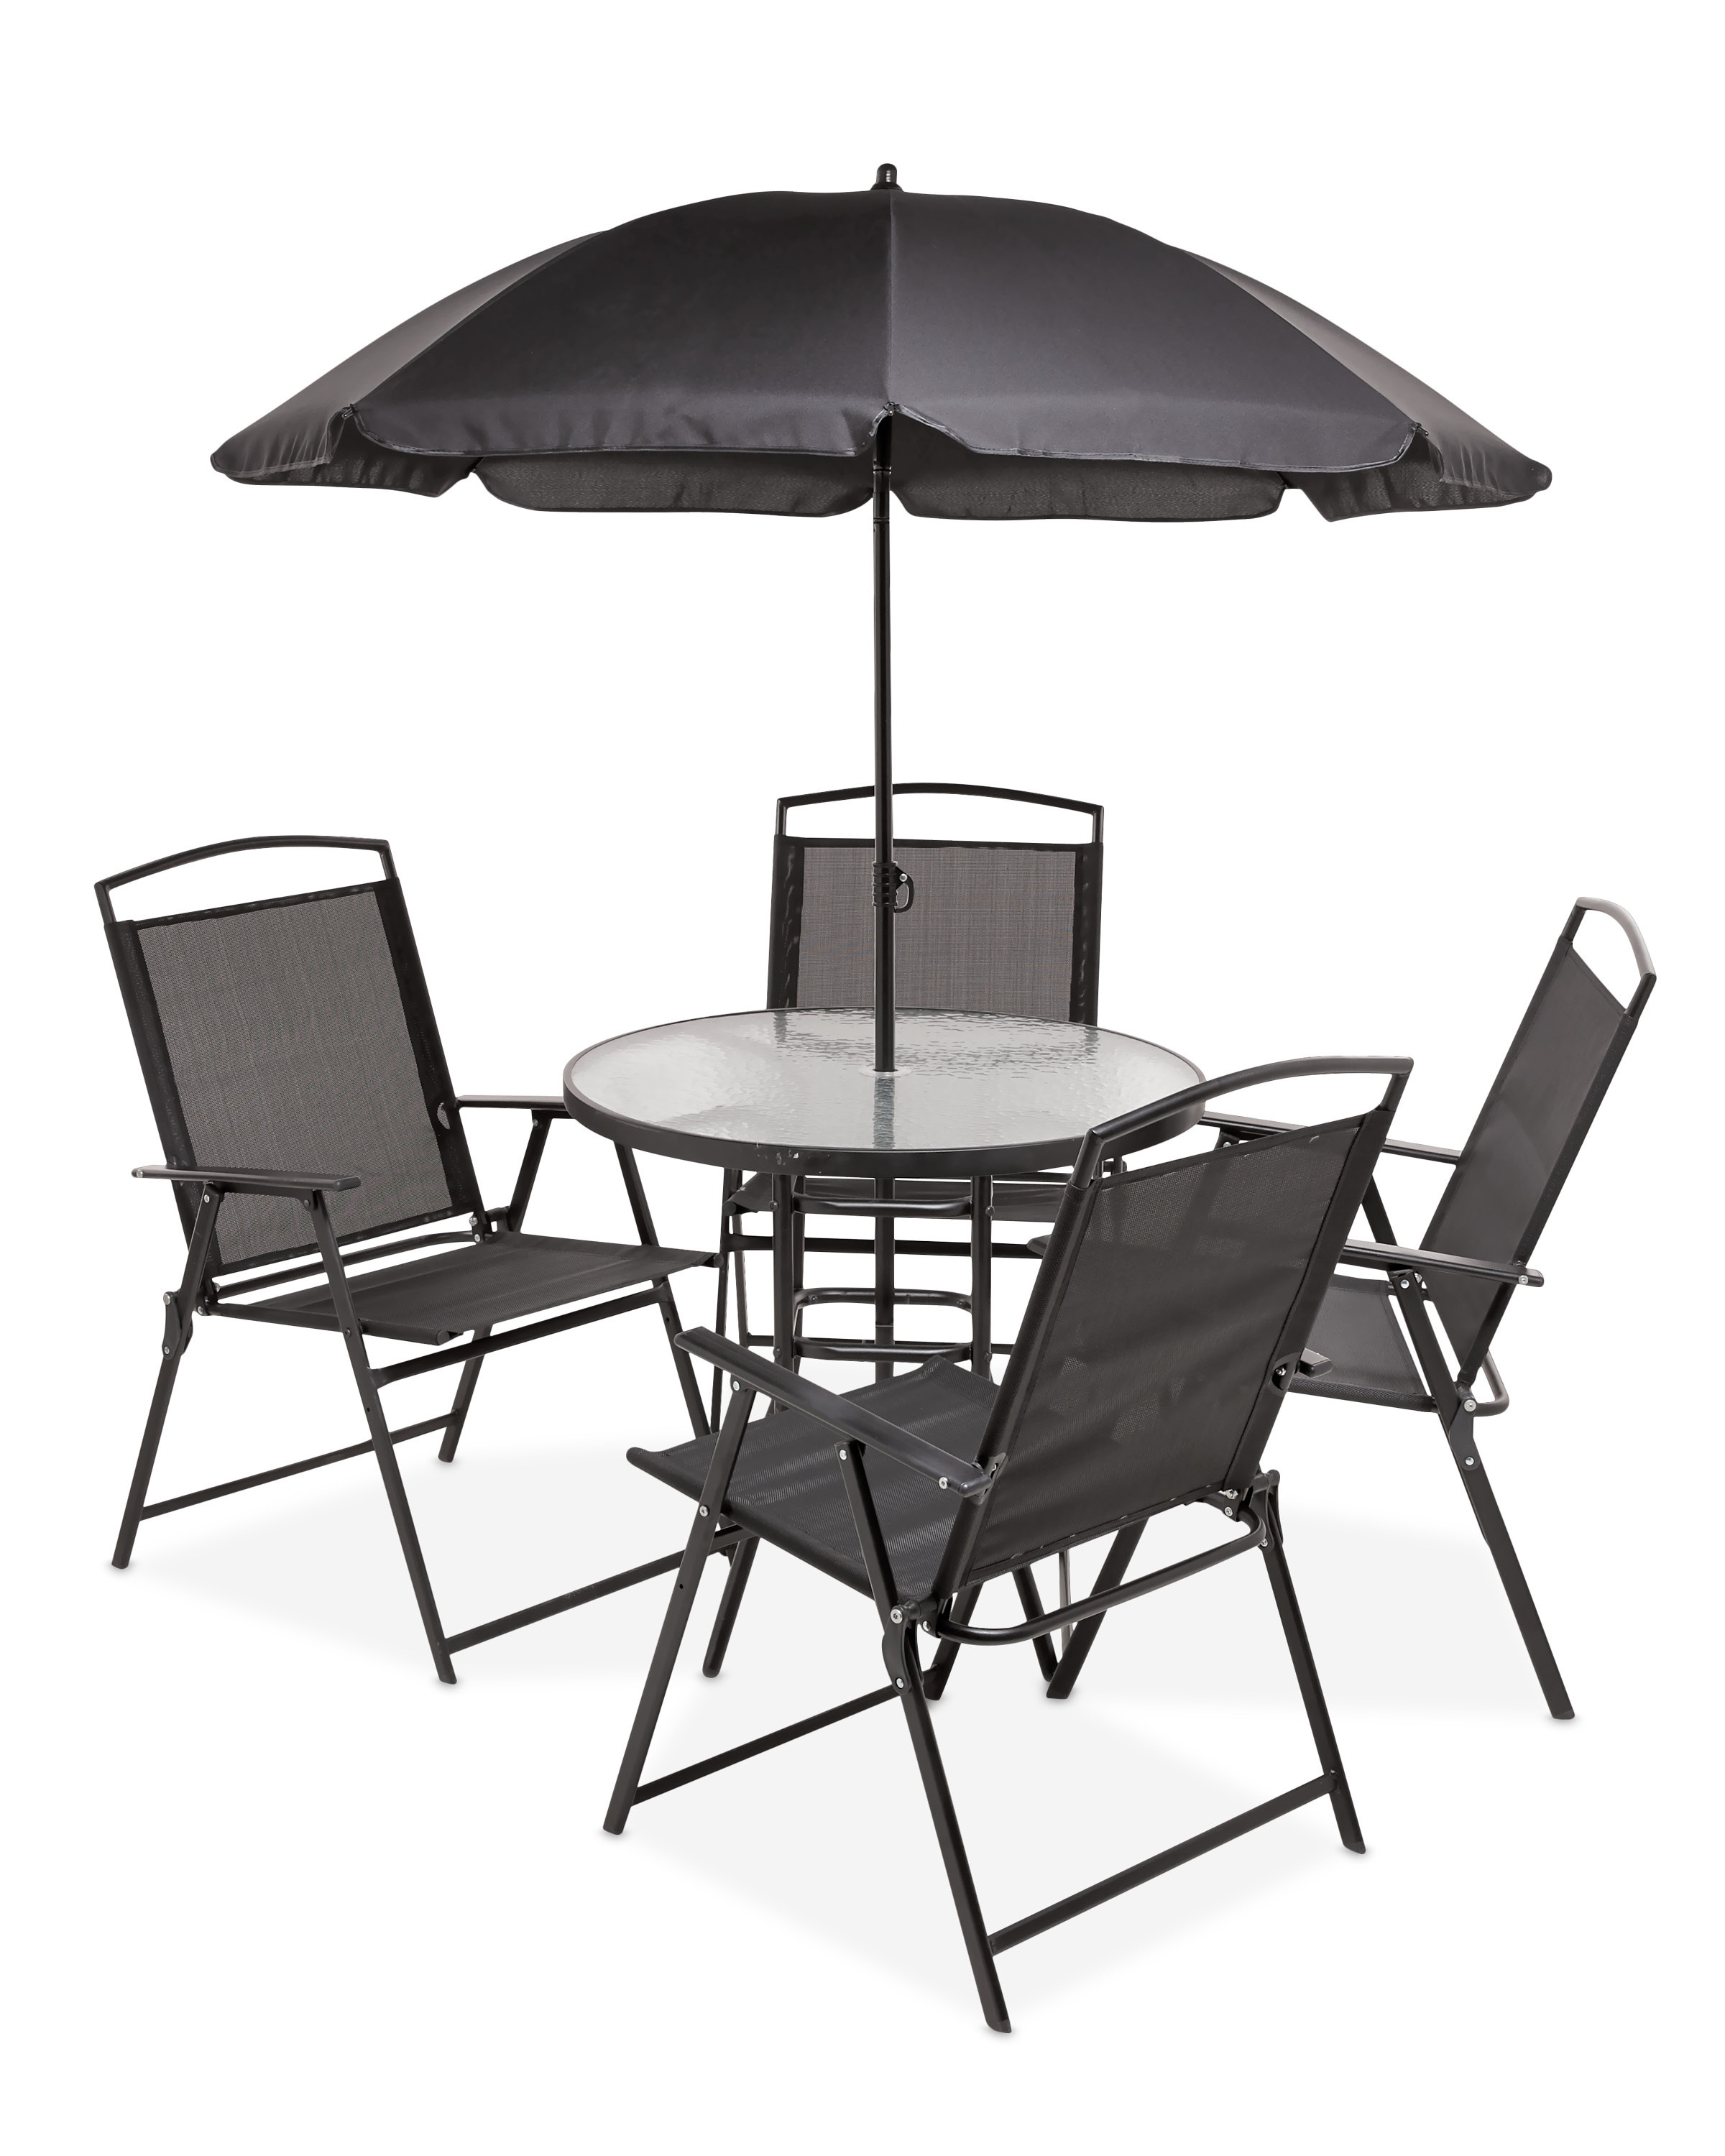 . 6 Piece Garden Furniture Set   ALDI UK